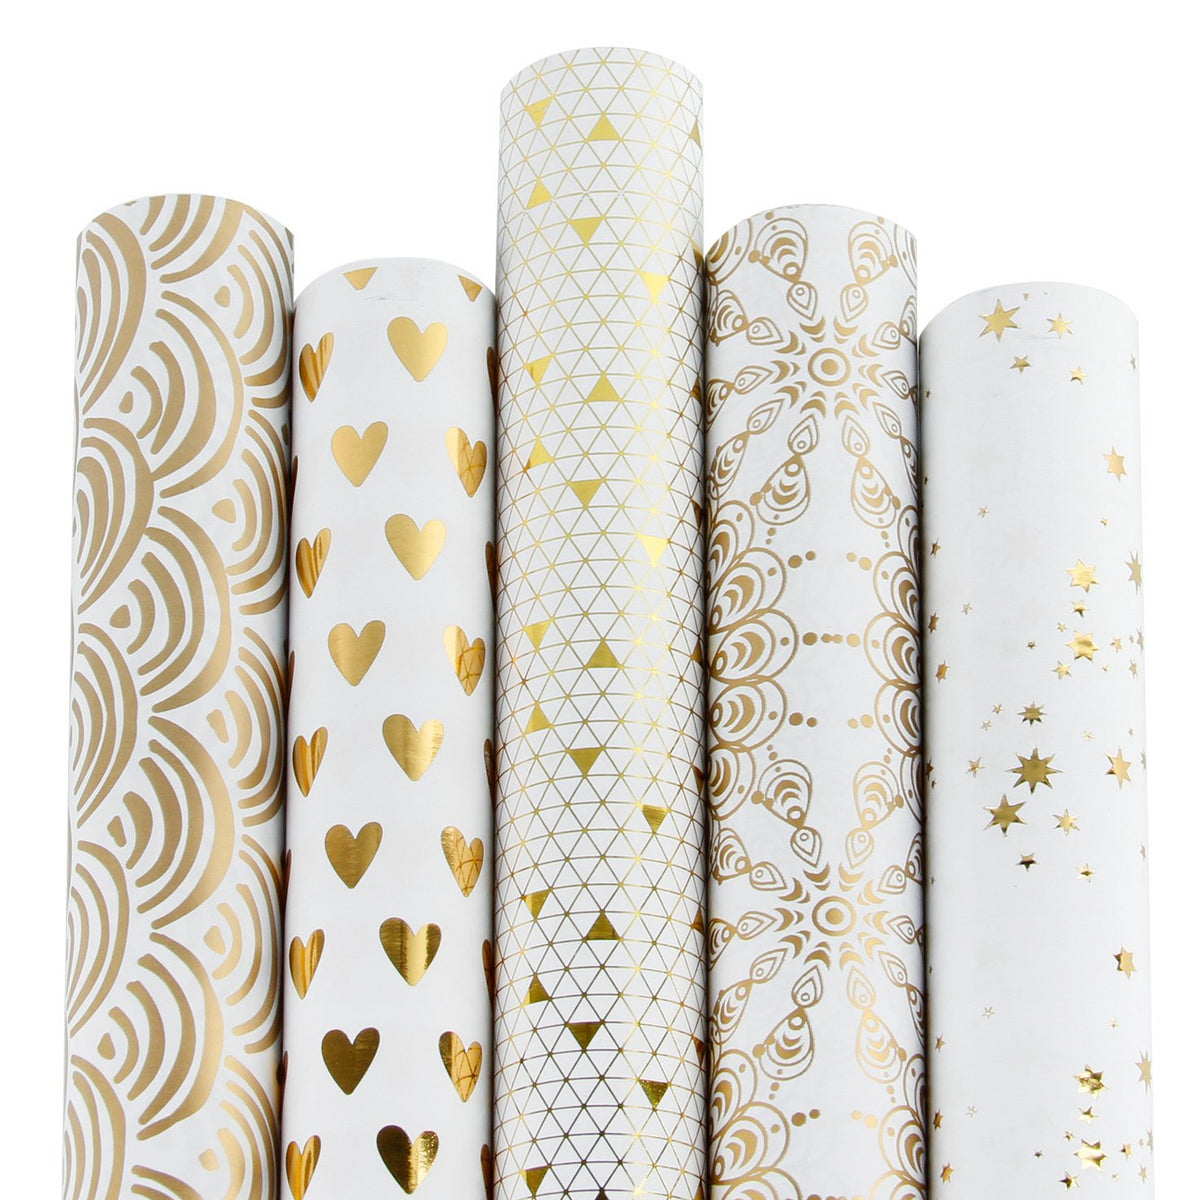 Wrapaholic-Gold-Foil-Printing-Gift-Wrapping-Paper-Roll-5-Rolls-Set-White-1